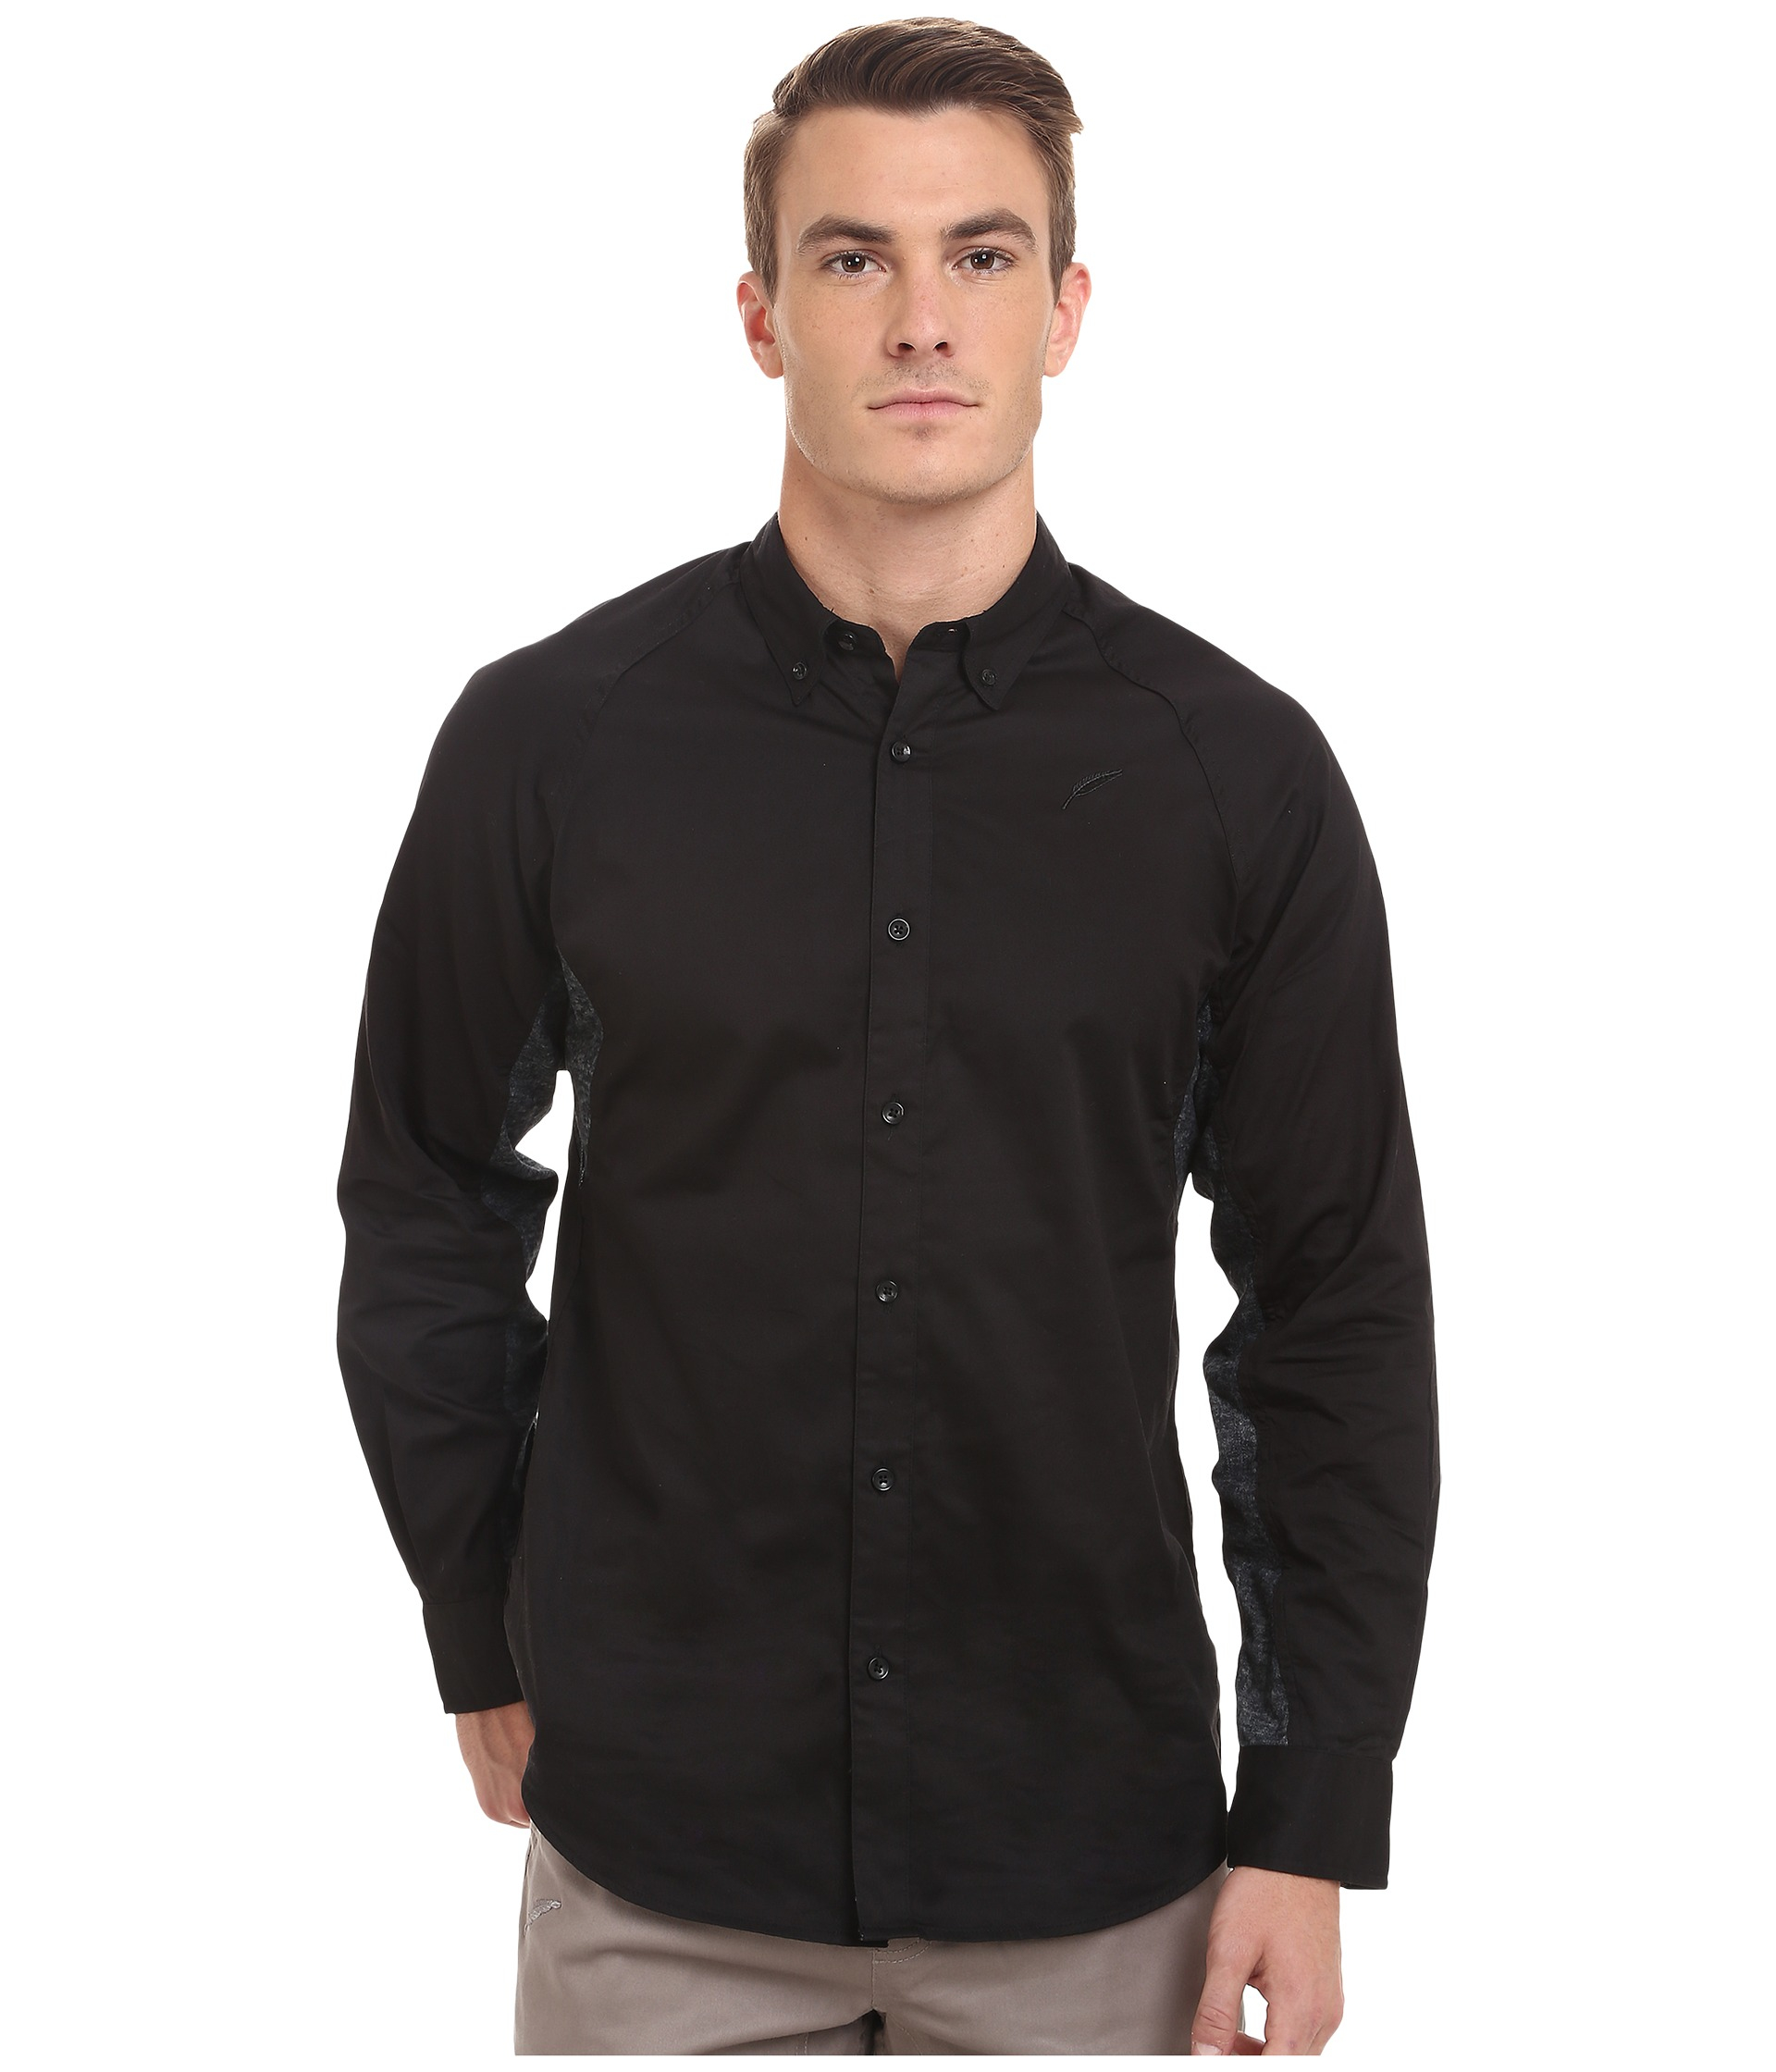 black long sleeve button up | Gommap Blog